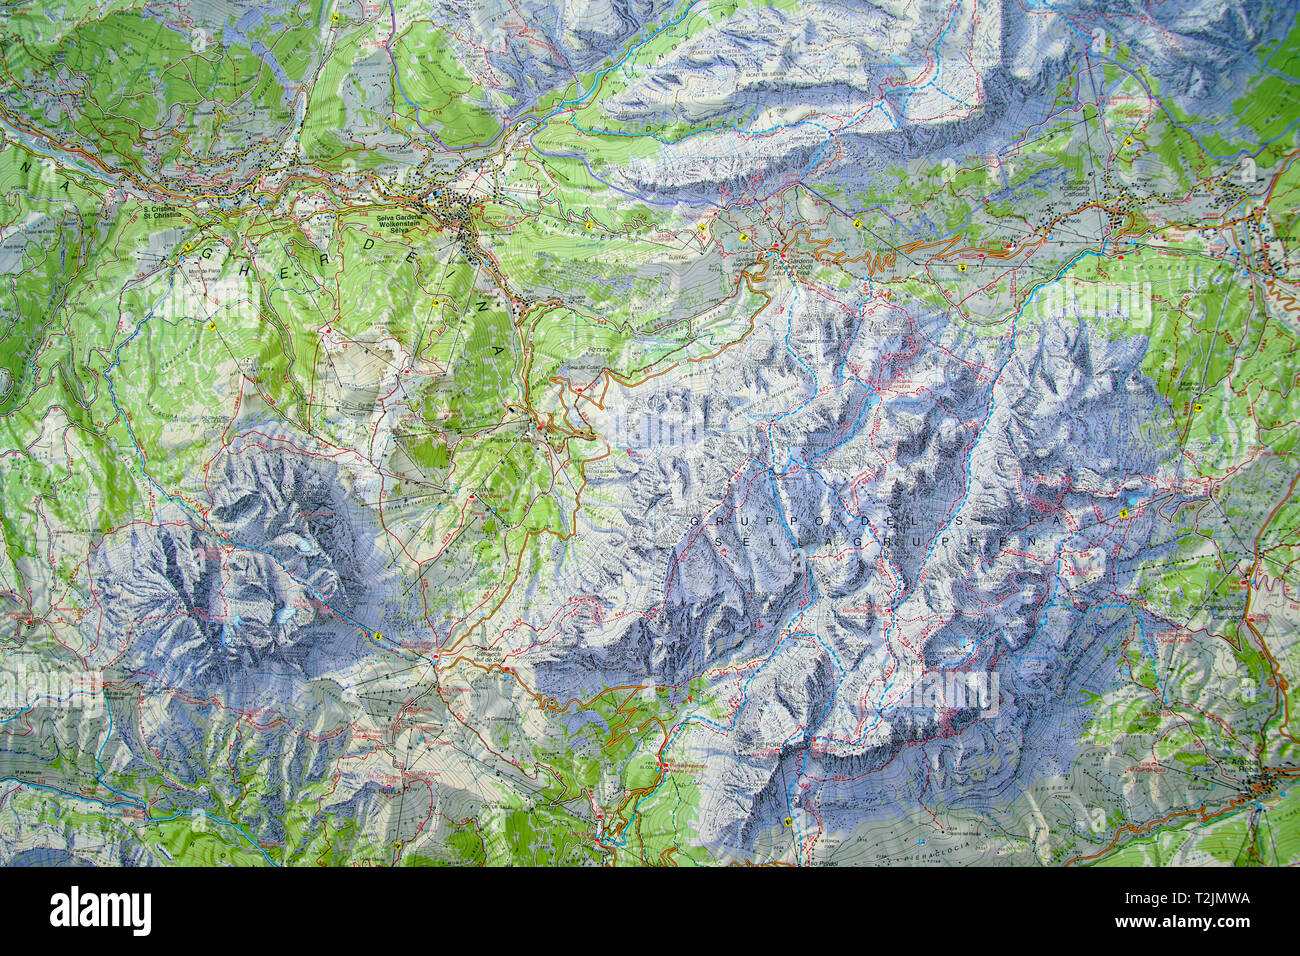 DOLOMITES, ITALY - AUG 6, 2018 - Topographic trail map of the ... on